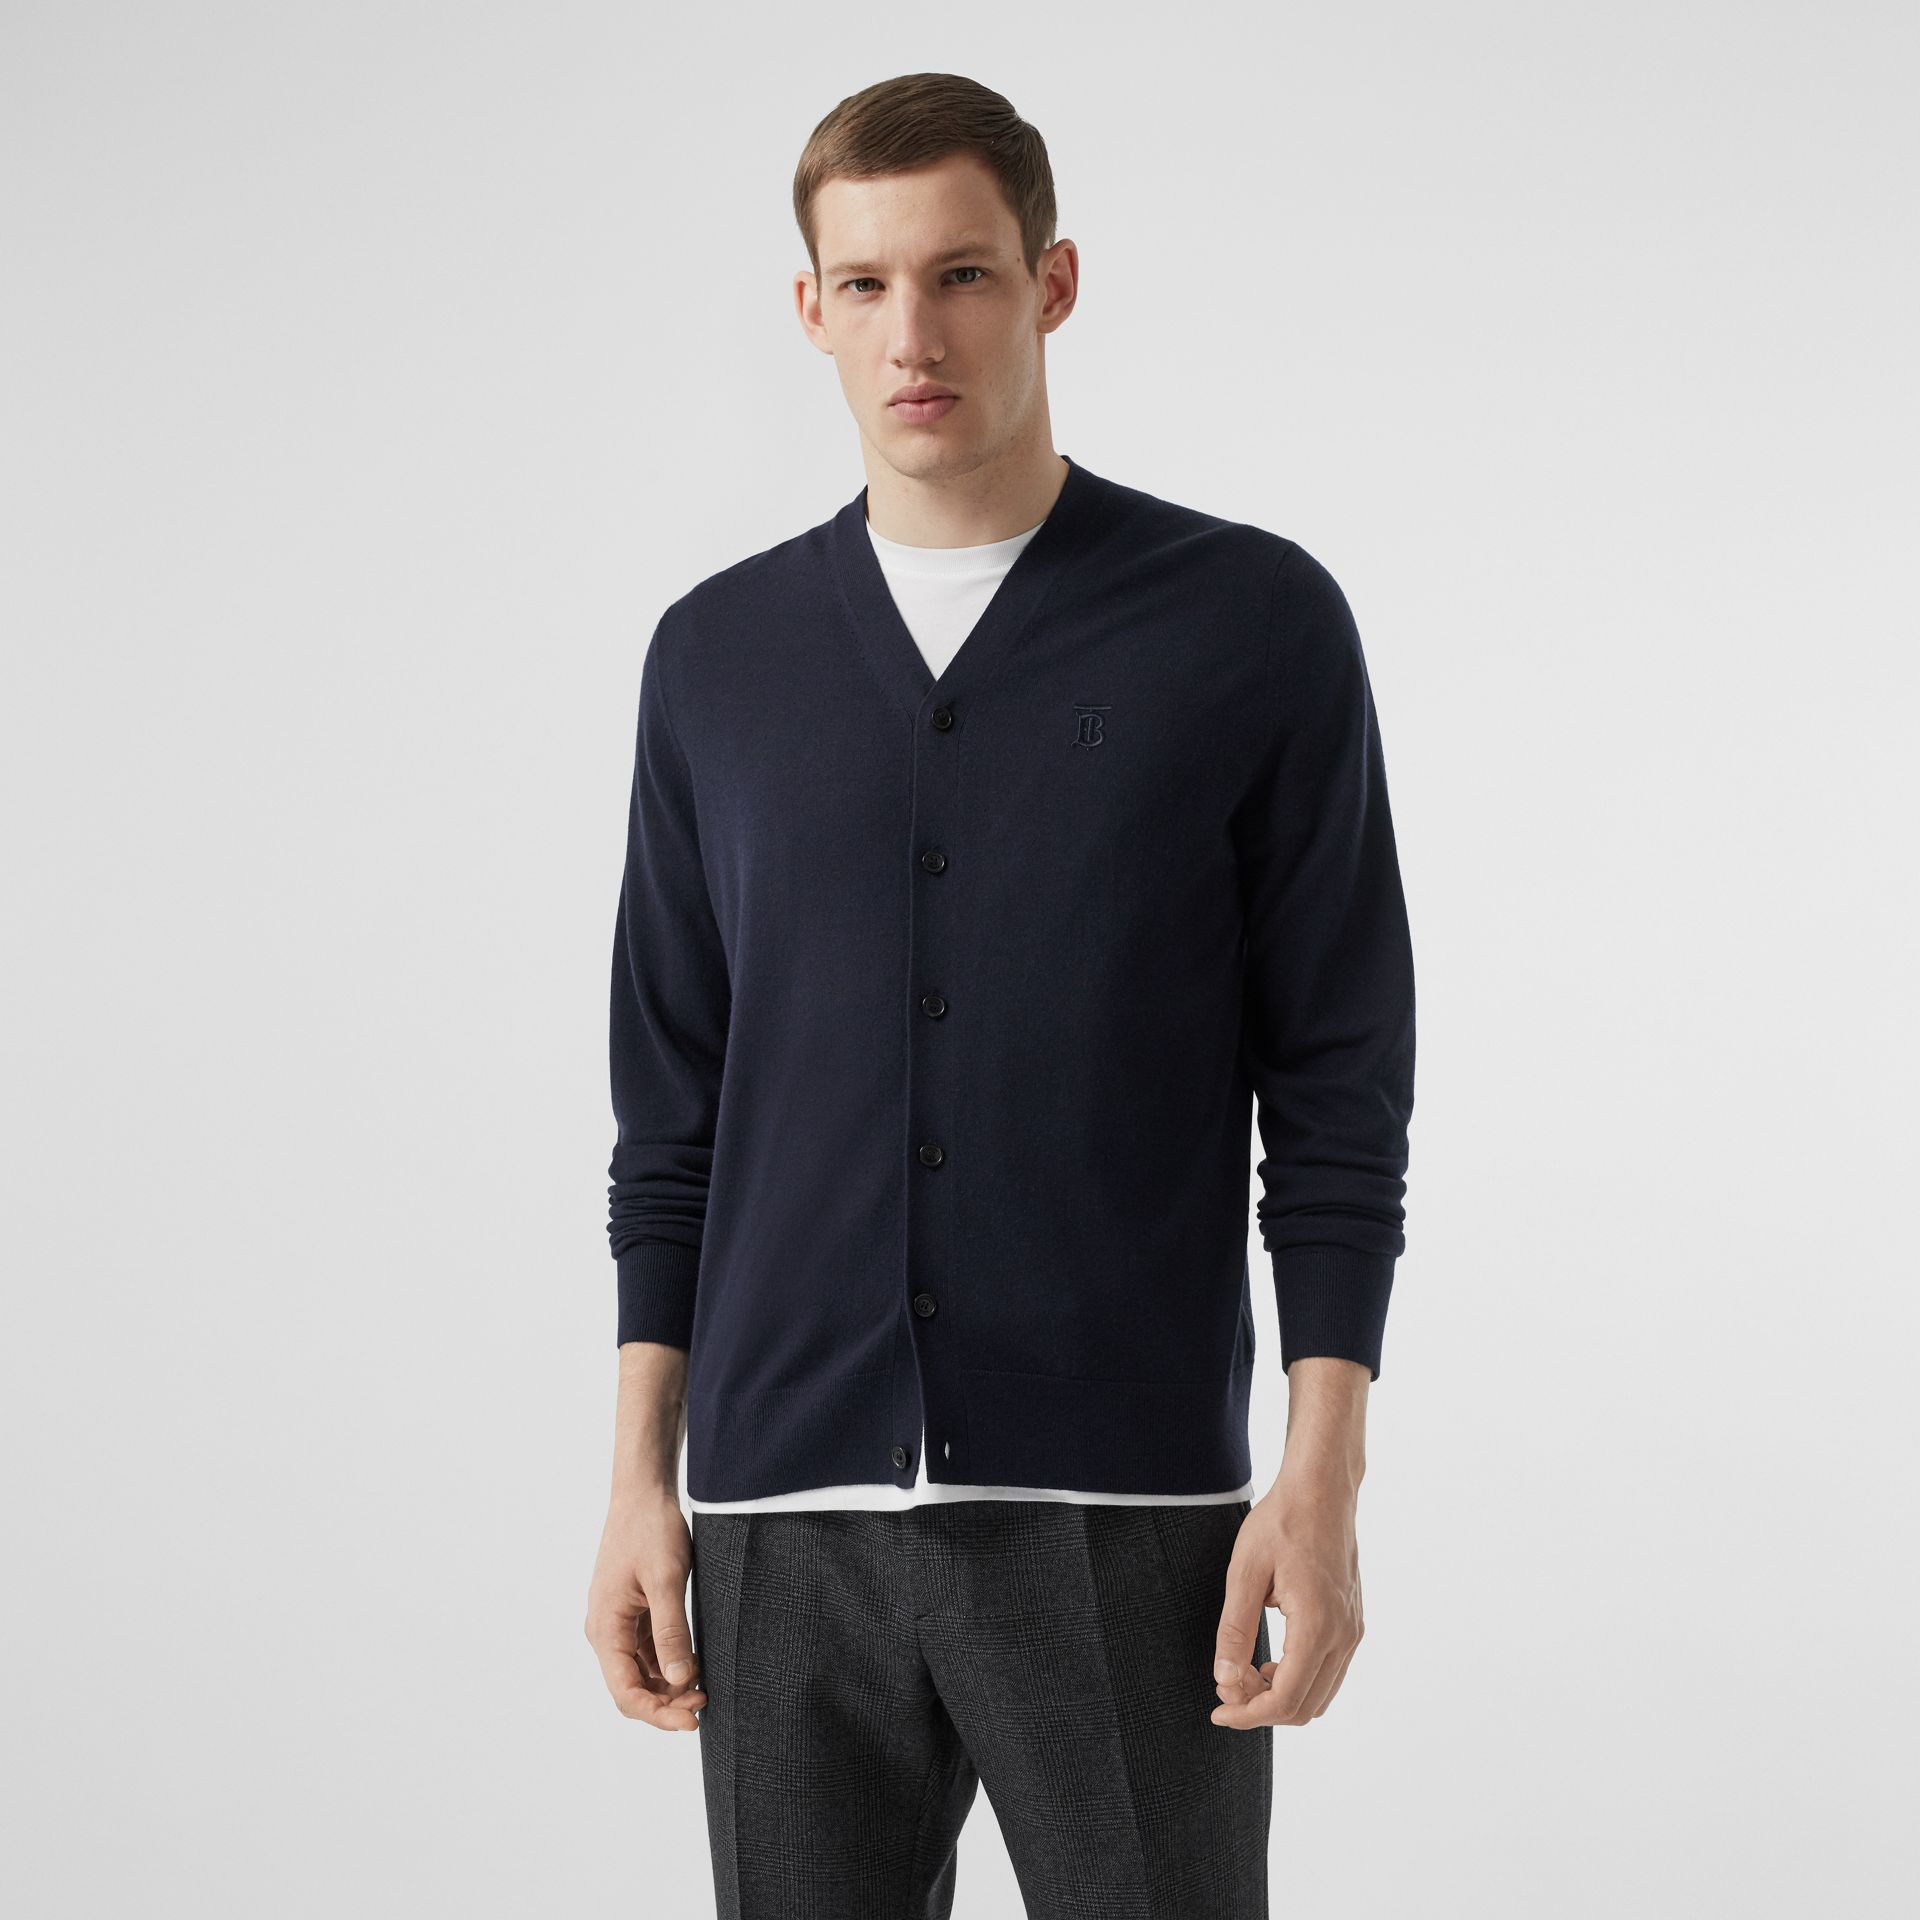 Monogram Motif Cashmere Cardigan in Navy - Men | Burberry - gallery image 4